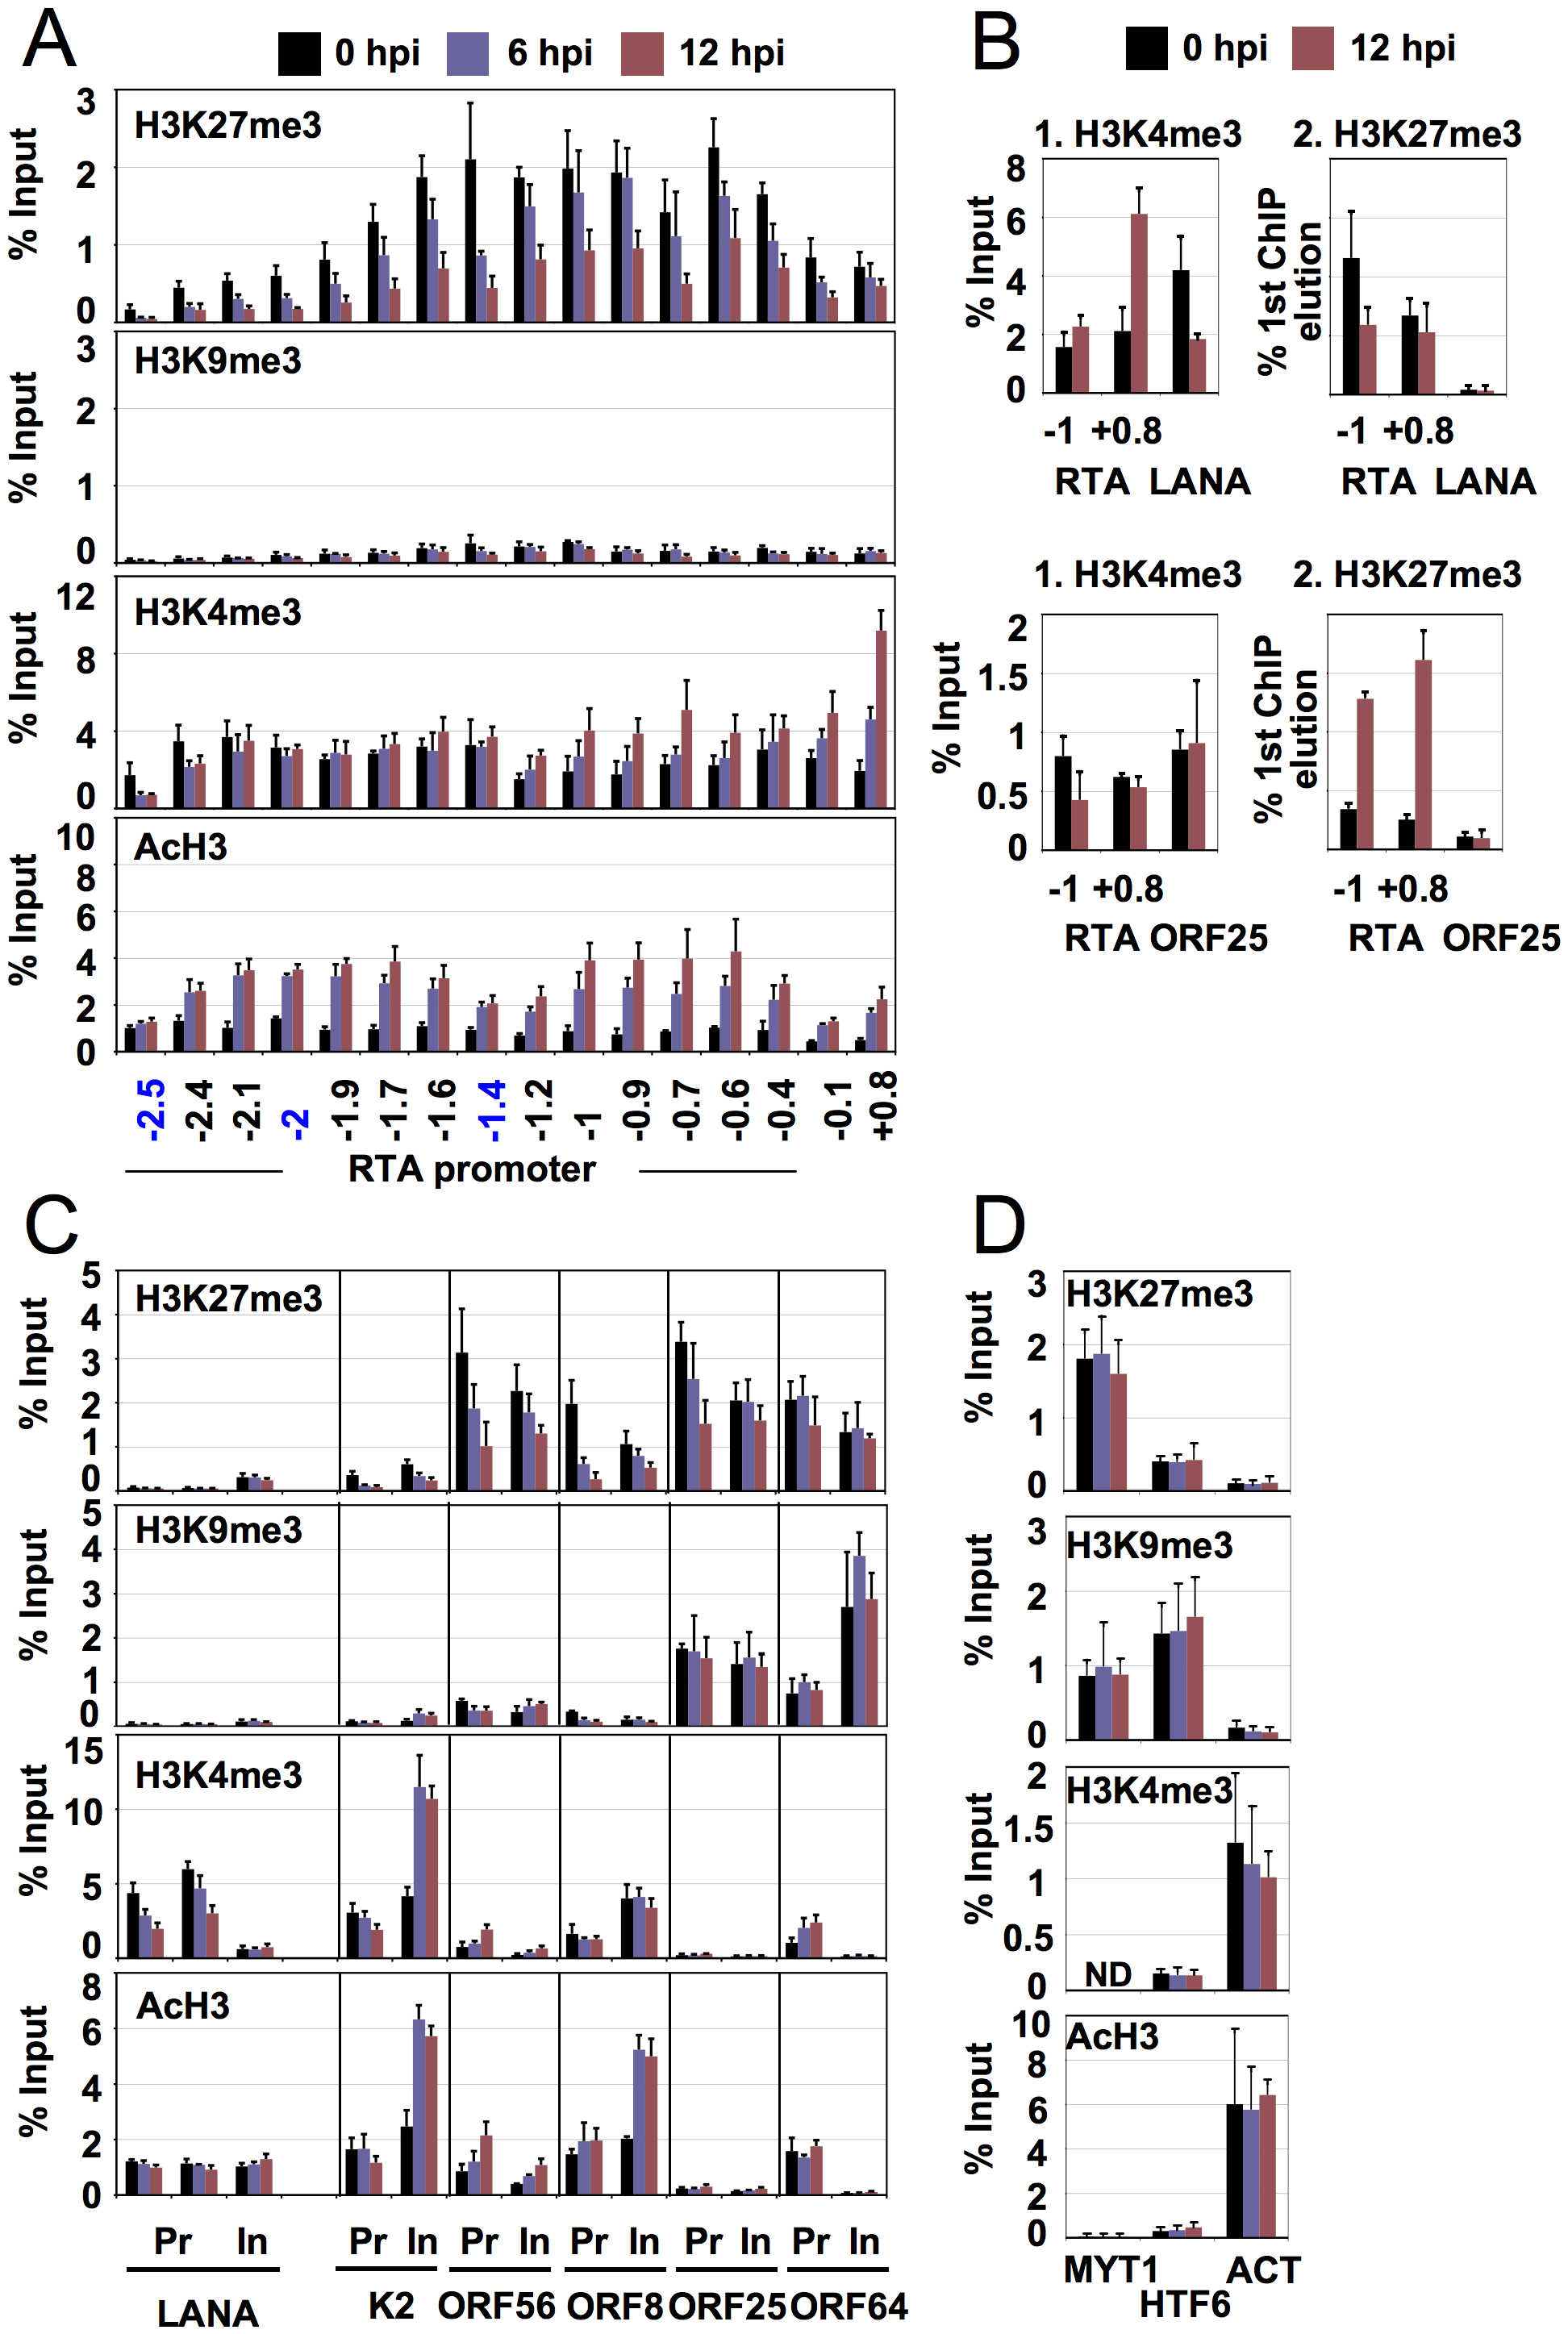 Dynamic association of histone modifications with viral genes during latency and reactivation.